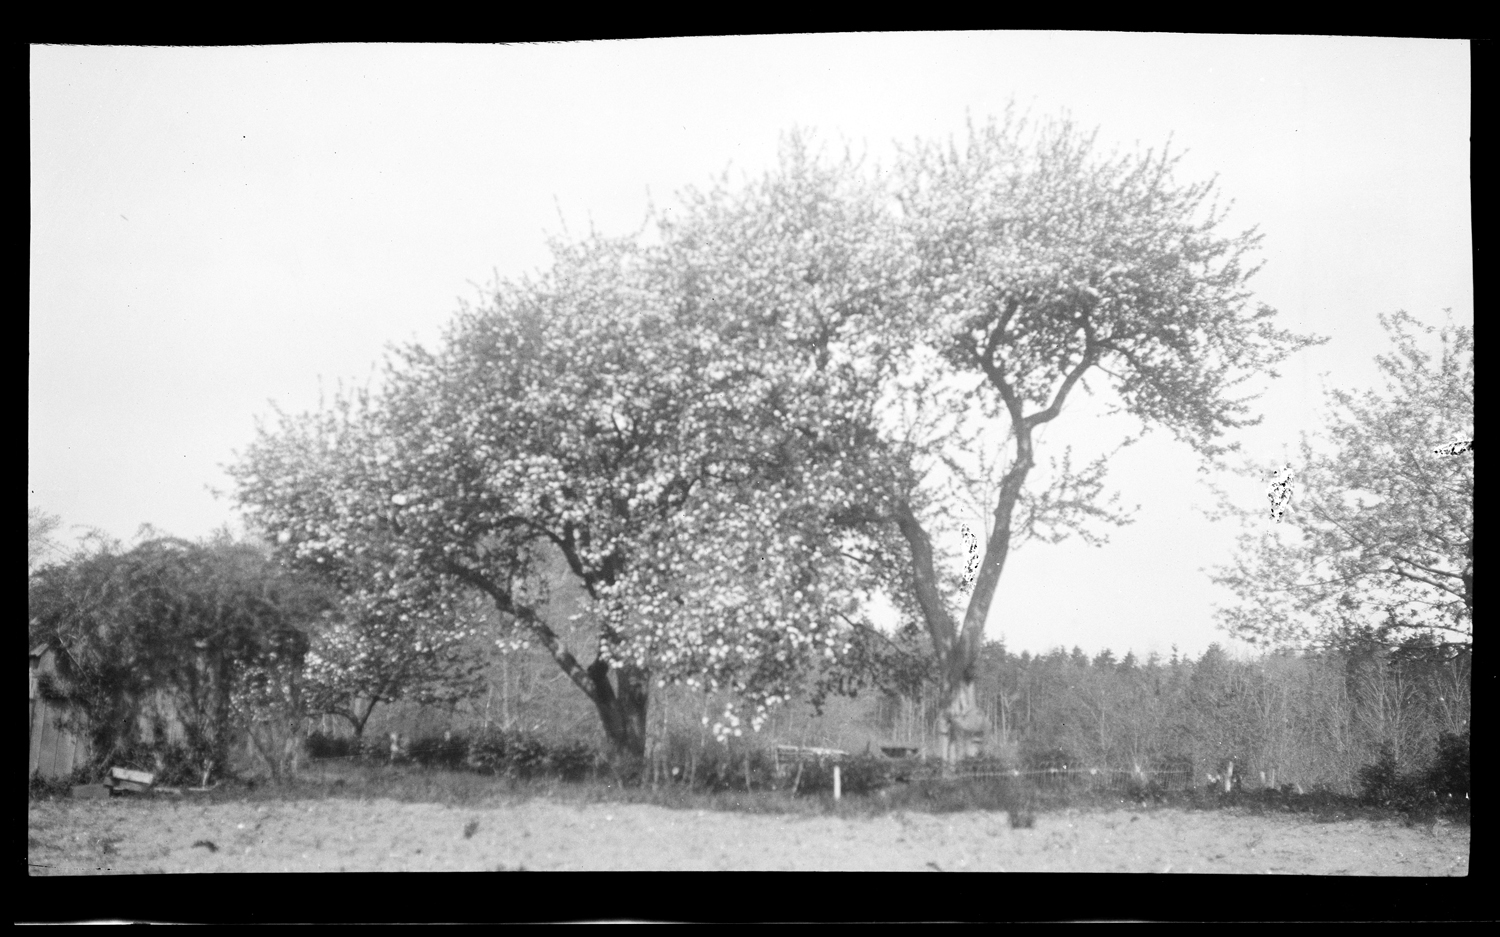 Orchard behind C. Drew's house, c. 1925